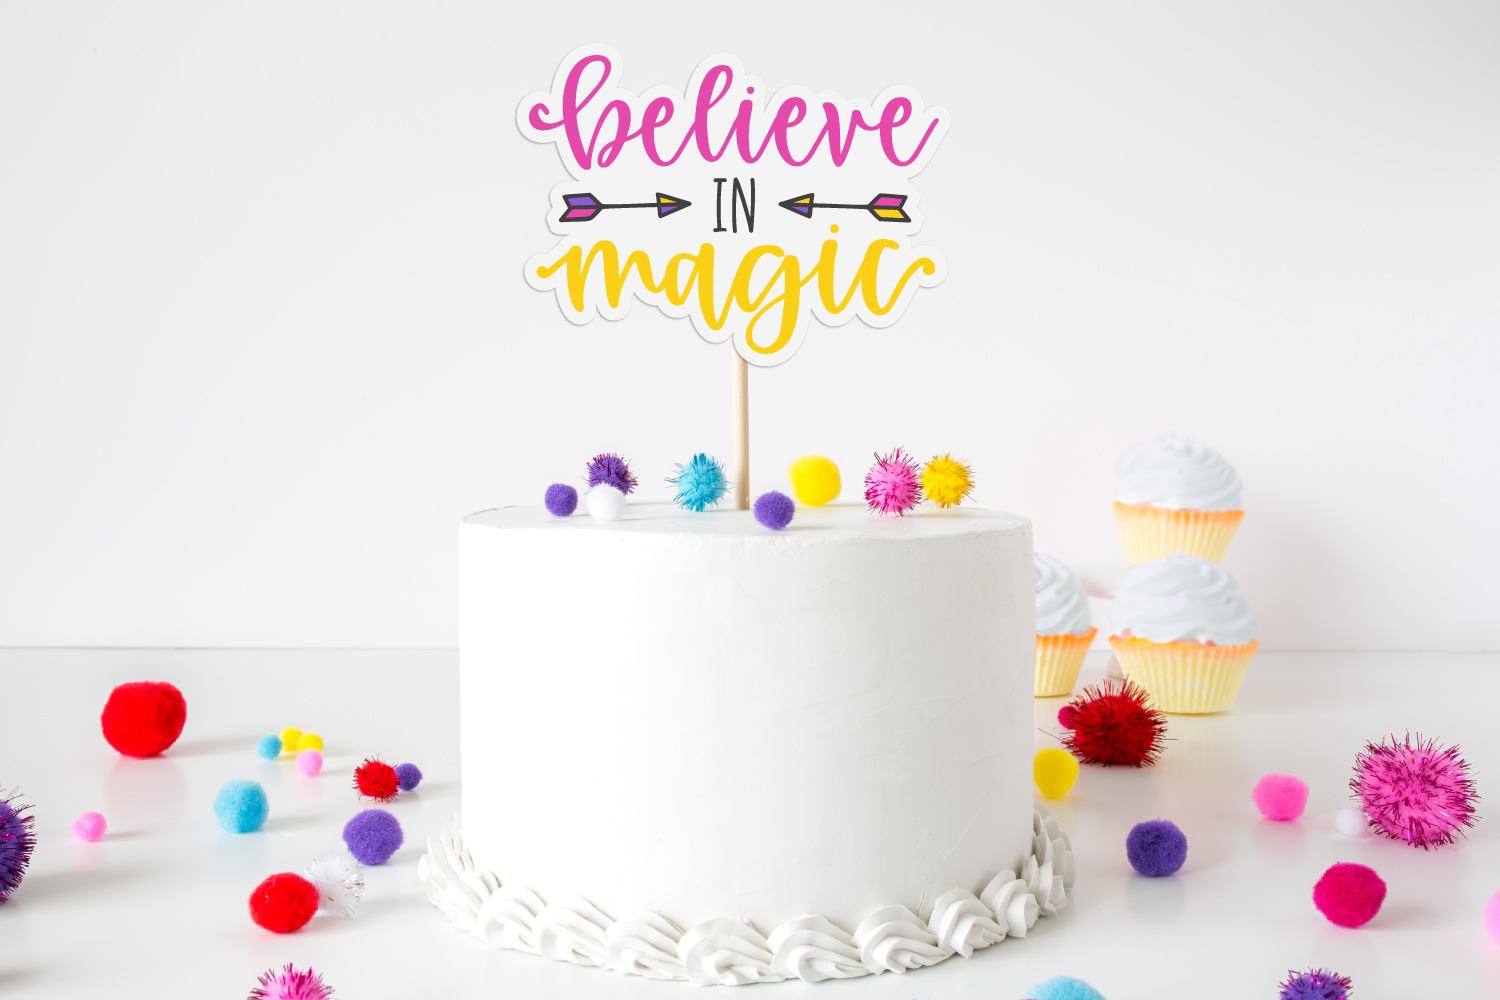 Believe in magic custom cake topper with inspiration SVG on white cake